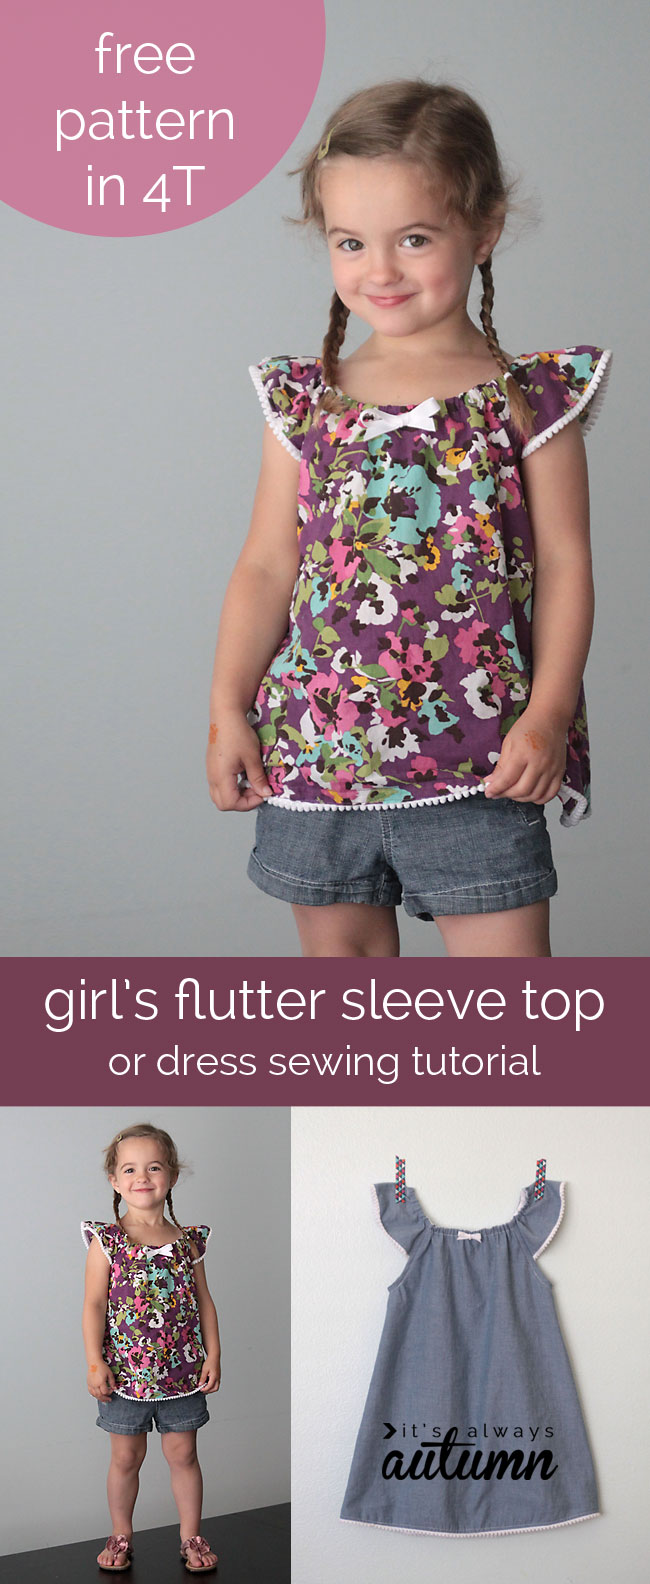 Free Flutter Sleeve Top Or Dress Pattern The Daily Seam